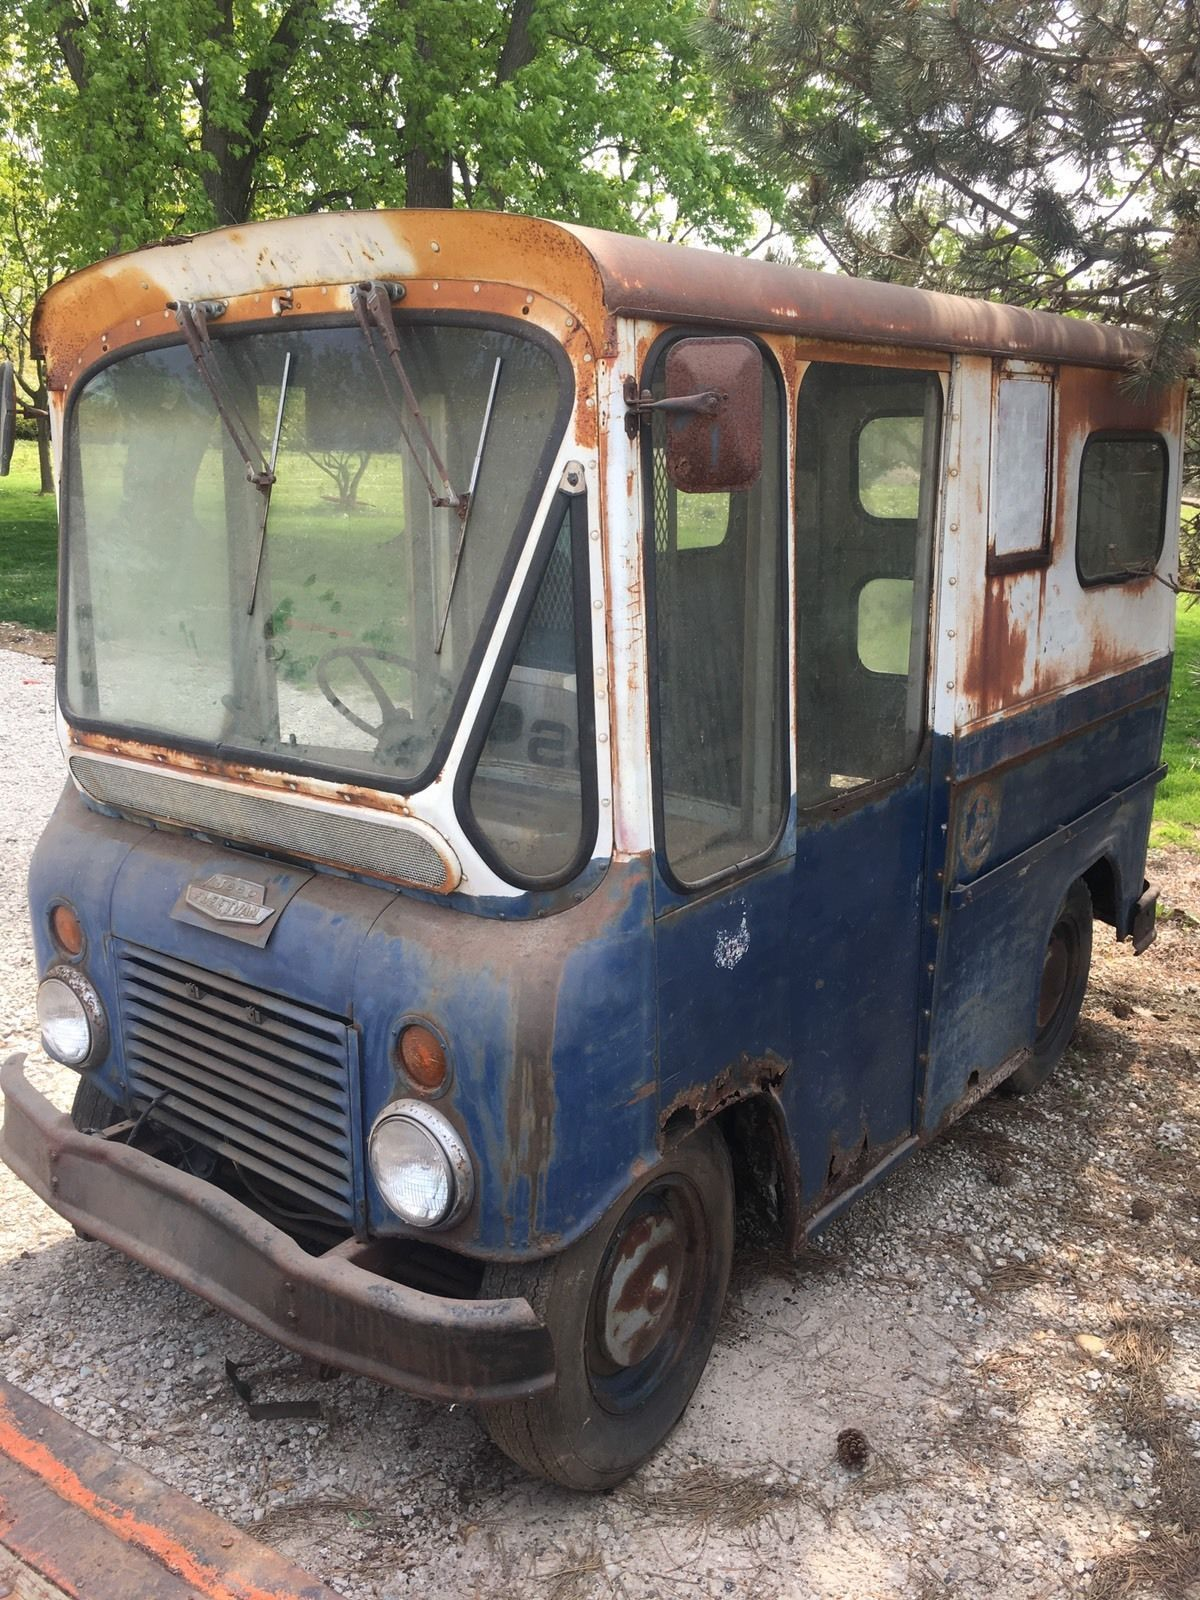 1963 postal fleetvan for sale on ebay june 2017 located in libertyville illinois jeep. Black Bedroom Furniture Sets. Home Design Ideas